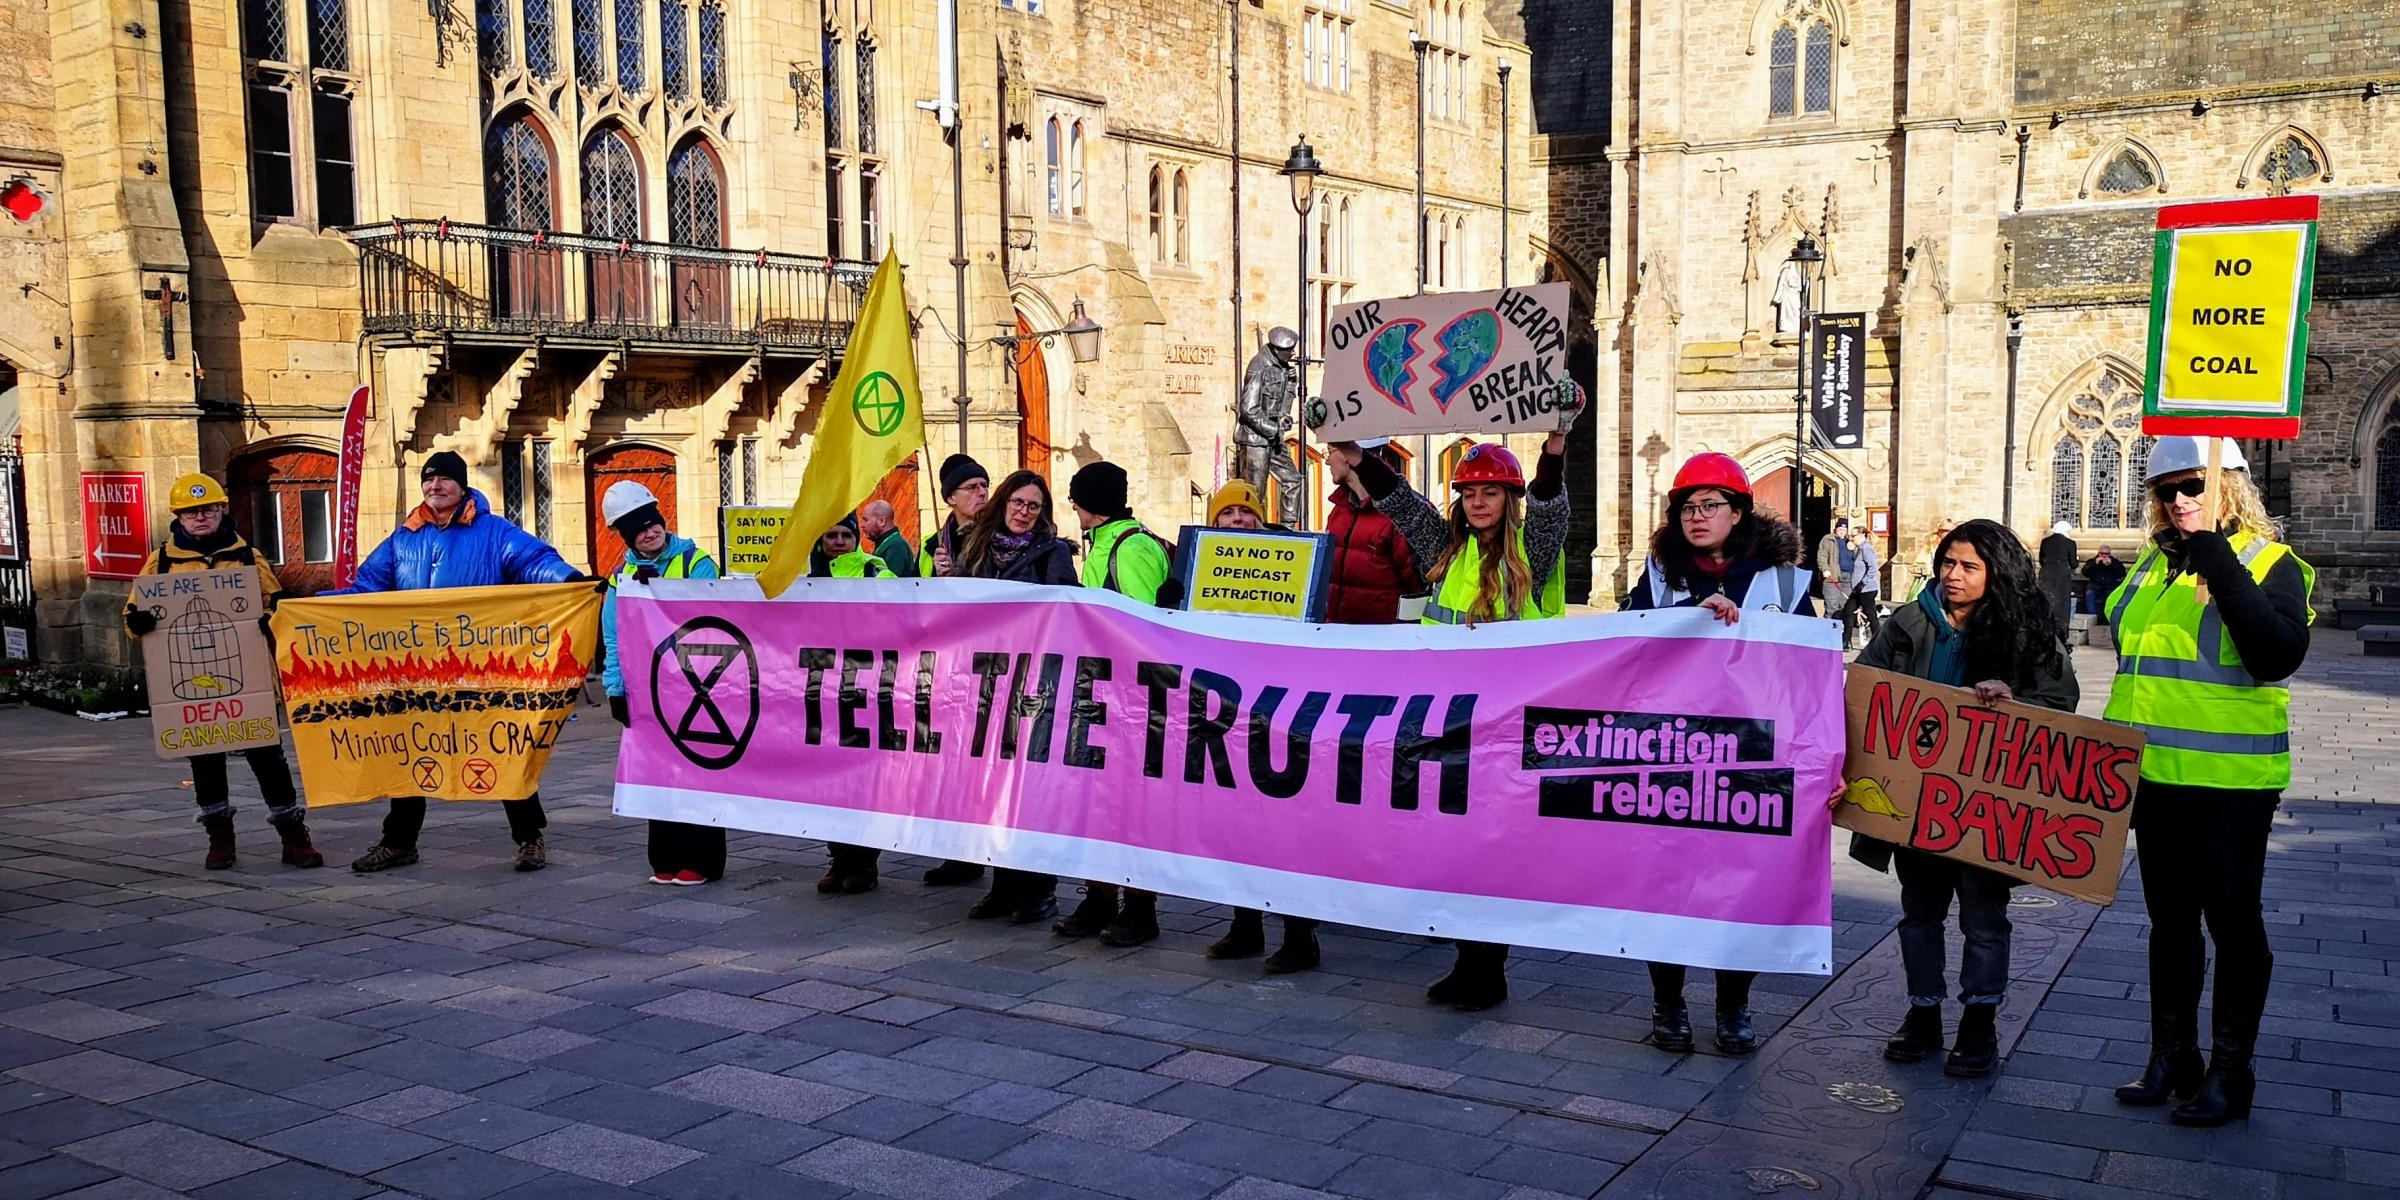 Extinction Rebellion to hold mass protests over opencast plans